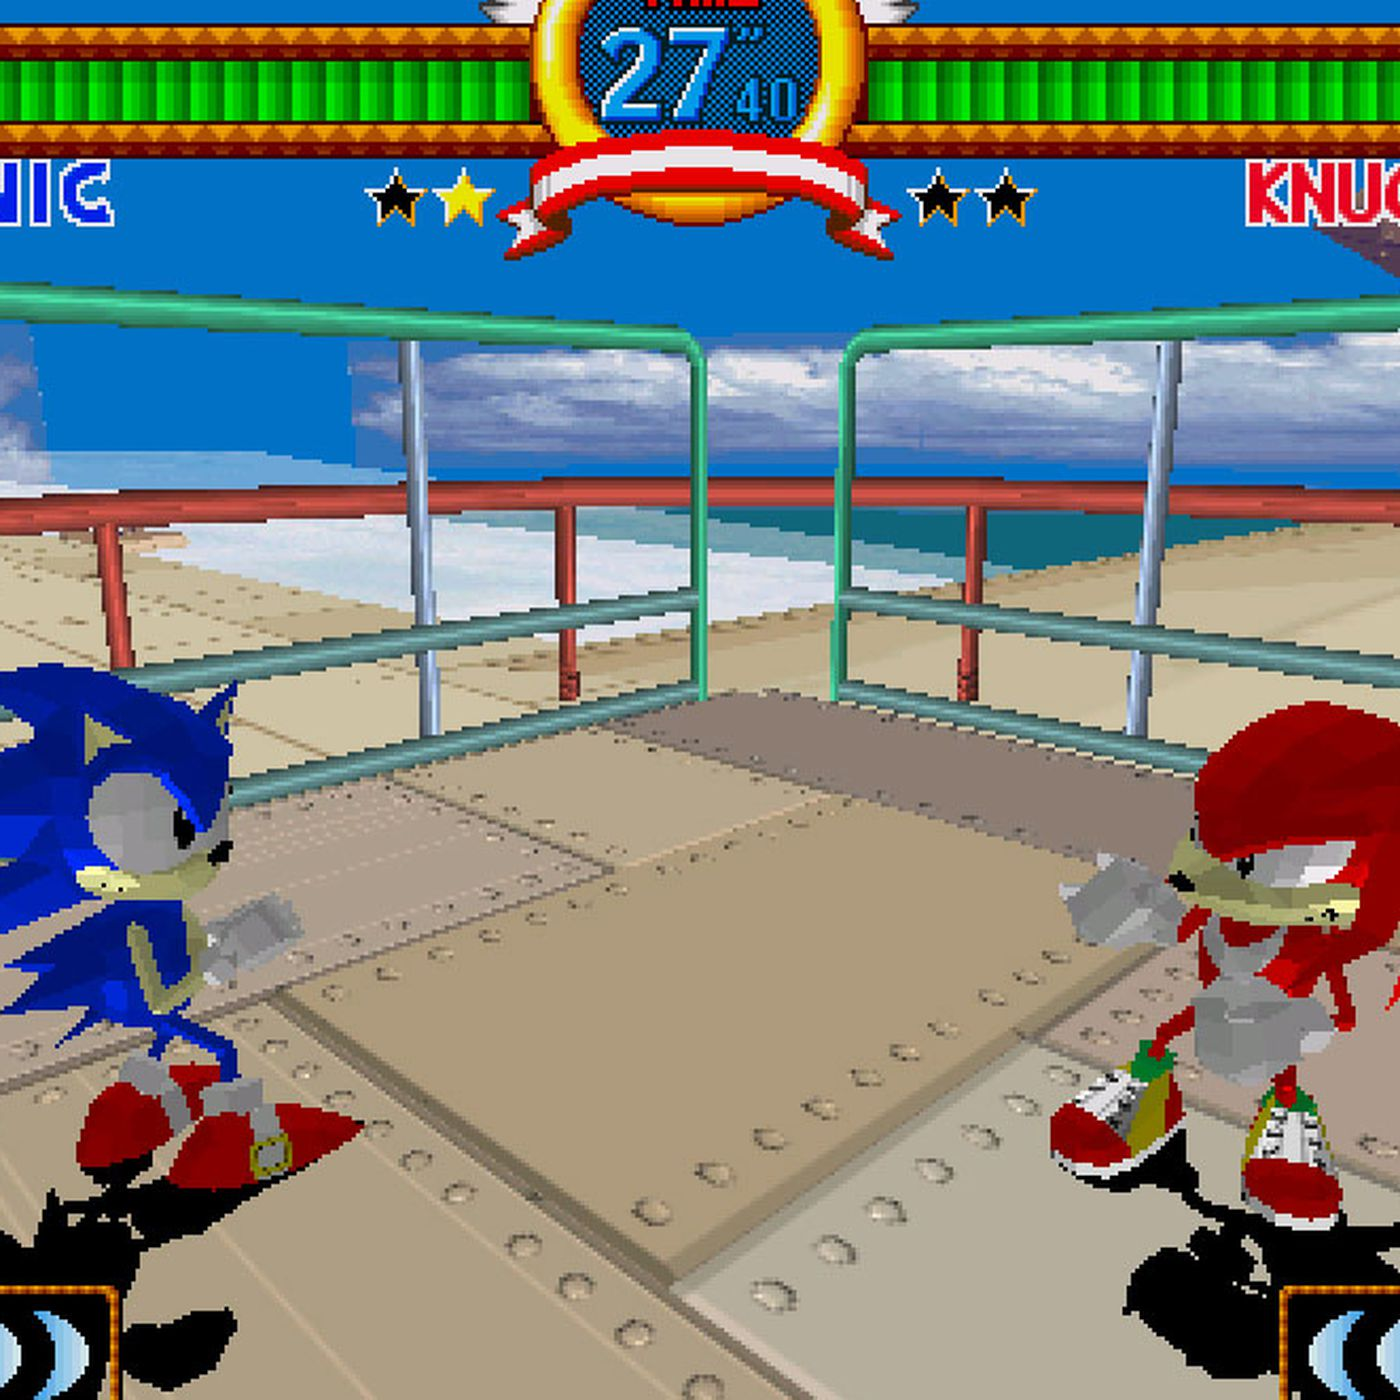 Sega's Virtua Fighter 2, Fighting Vipers, and Sonic the